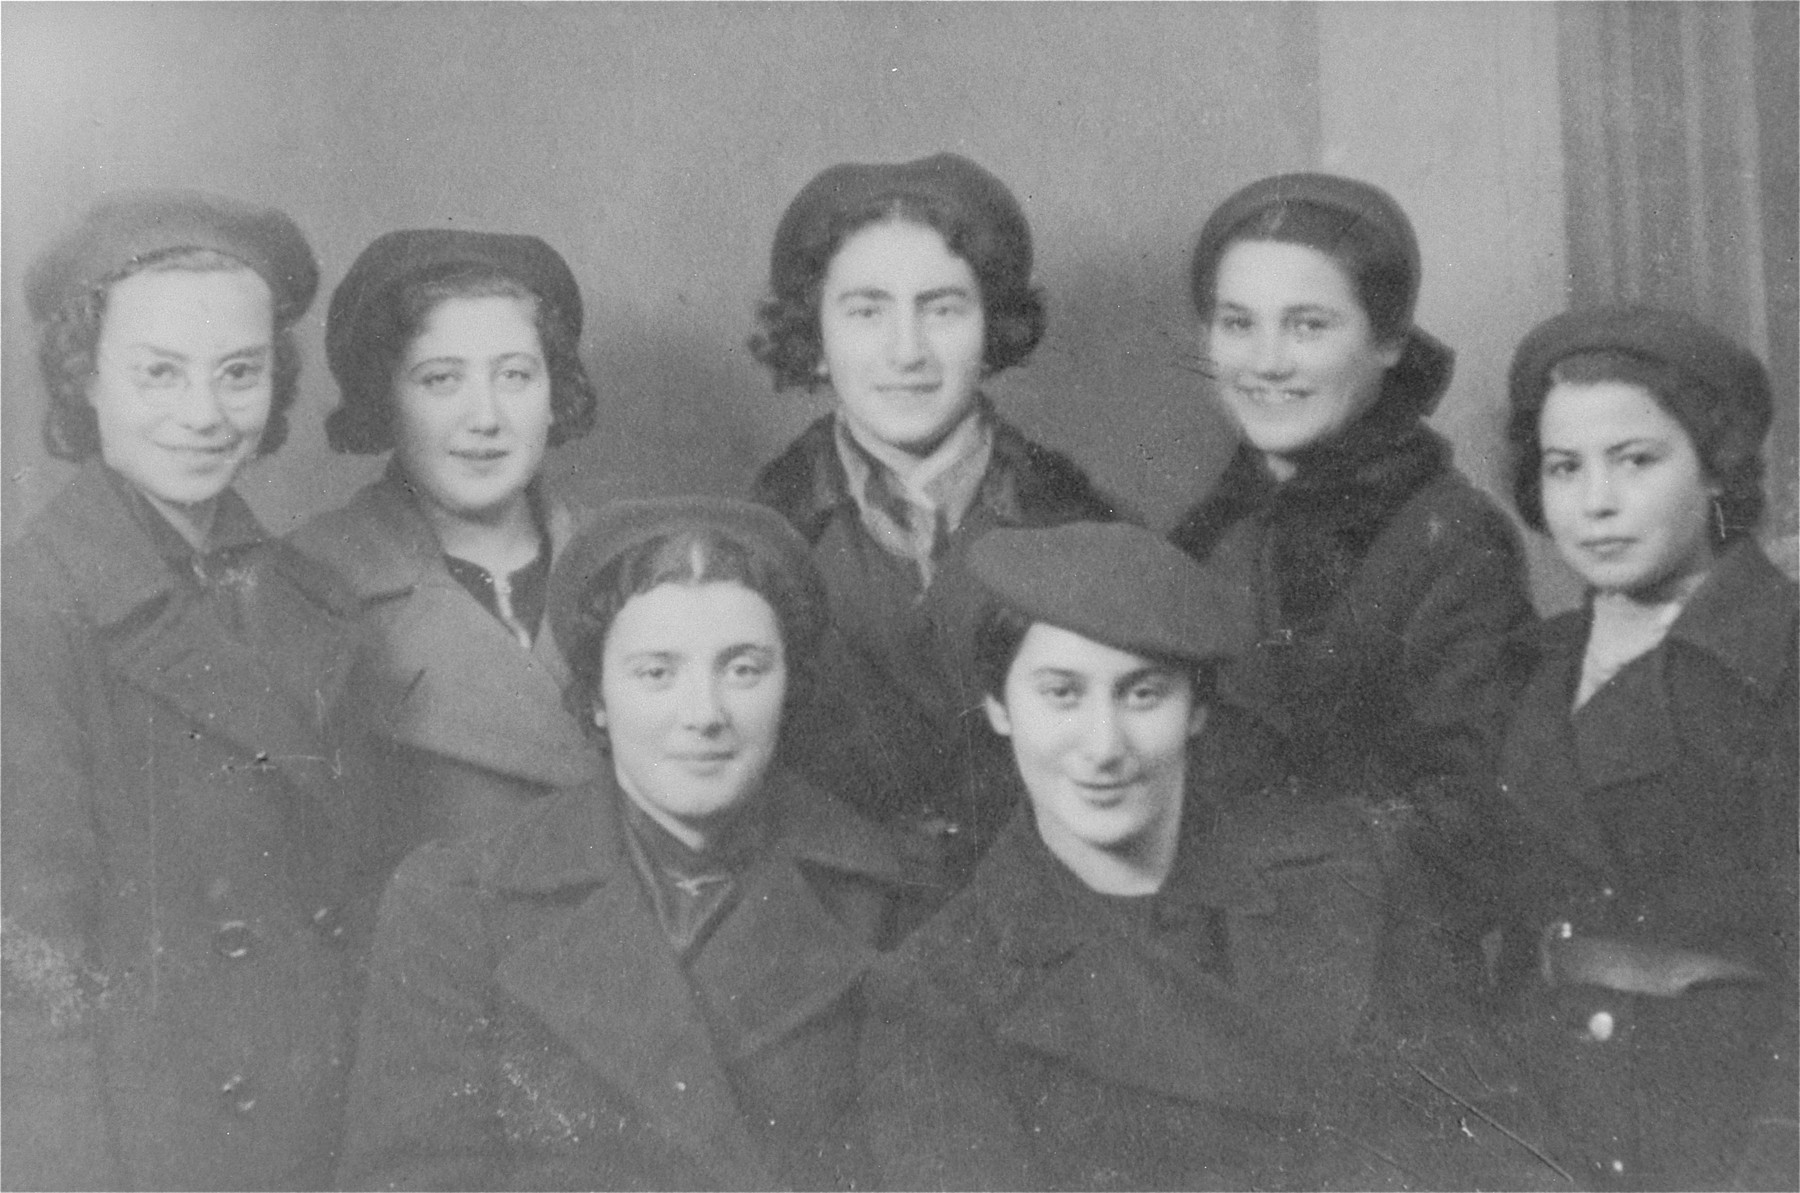 Group portrait of girls in the Hashomer Hatzair Zionist youth movement in Ciechanow.  Pictured in the front row from left to right are: Chana Pazgorek and Sara Robota.  Standing in the back row from left to right are: Ruchcha Kirshenzweig, Jochevet Aurbach, unknown, Hinda Levinthal and Hena Grynbaum.  Jochevet, Hinda and Hena all perished in Auschwitz.